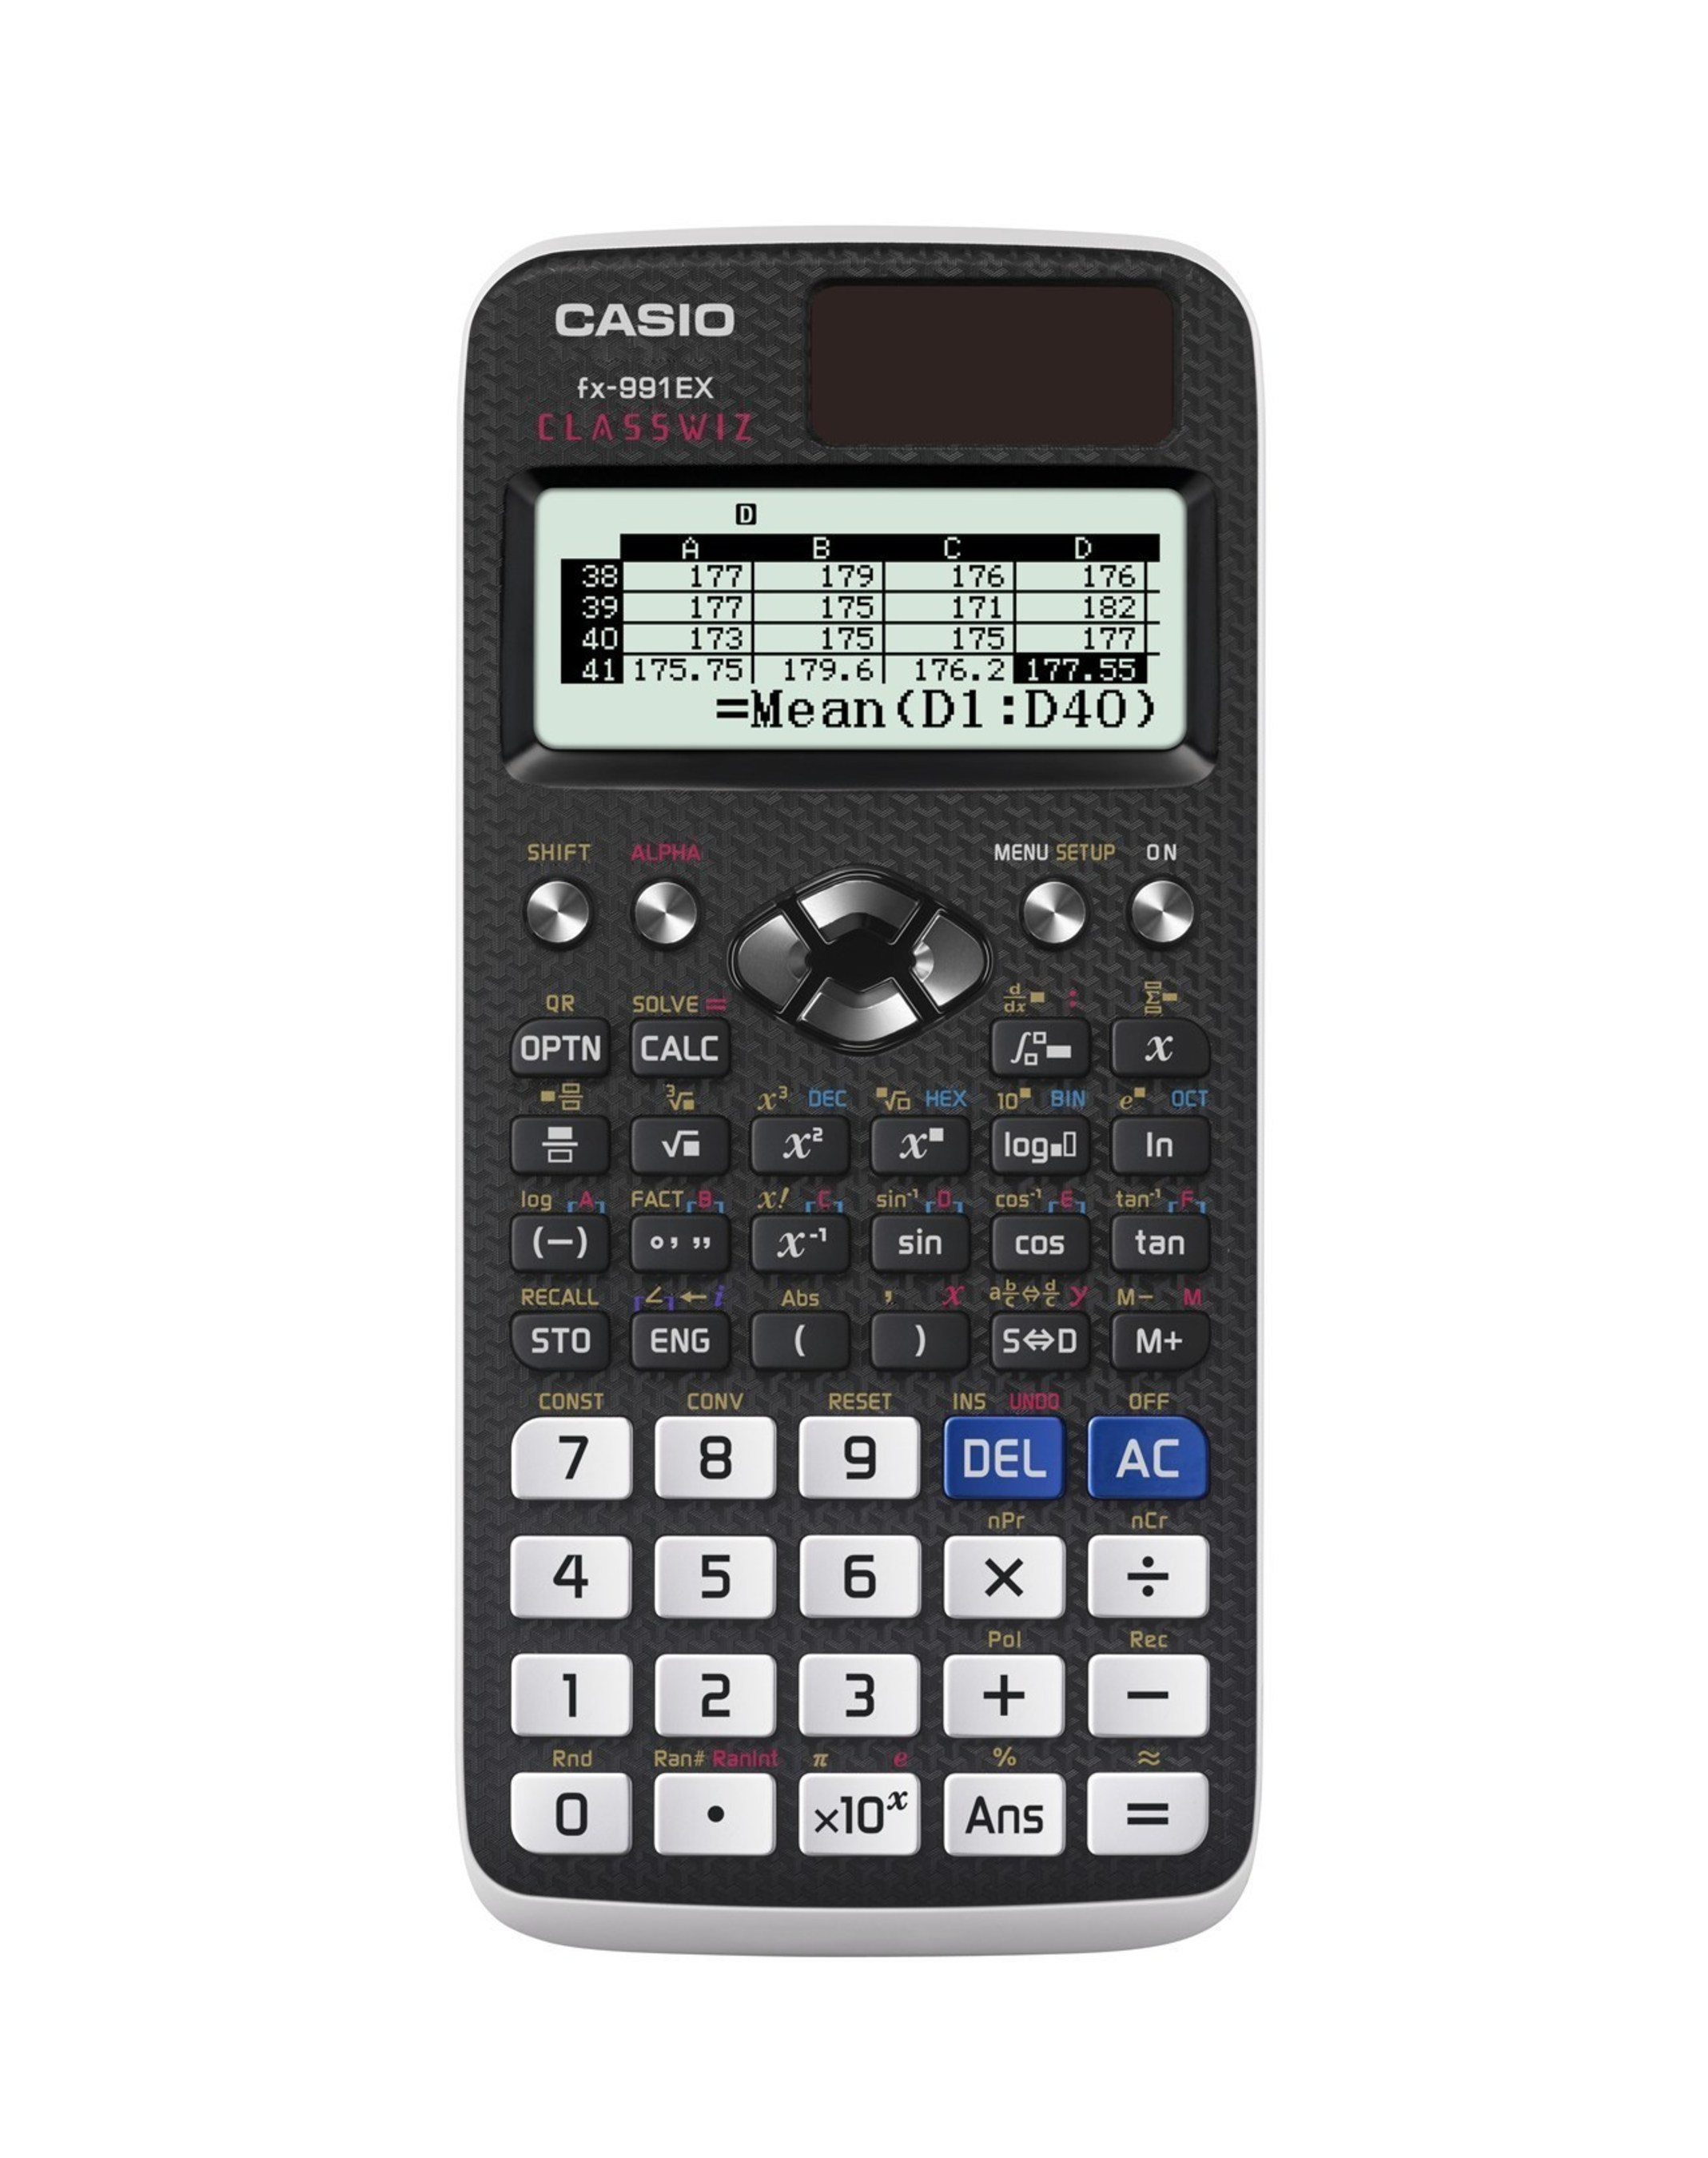 Casio Delivers Budgeting Solutions for Black Friday Shopping